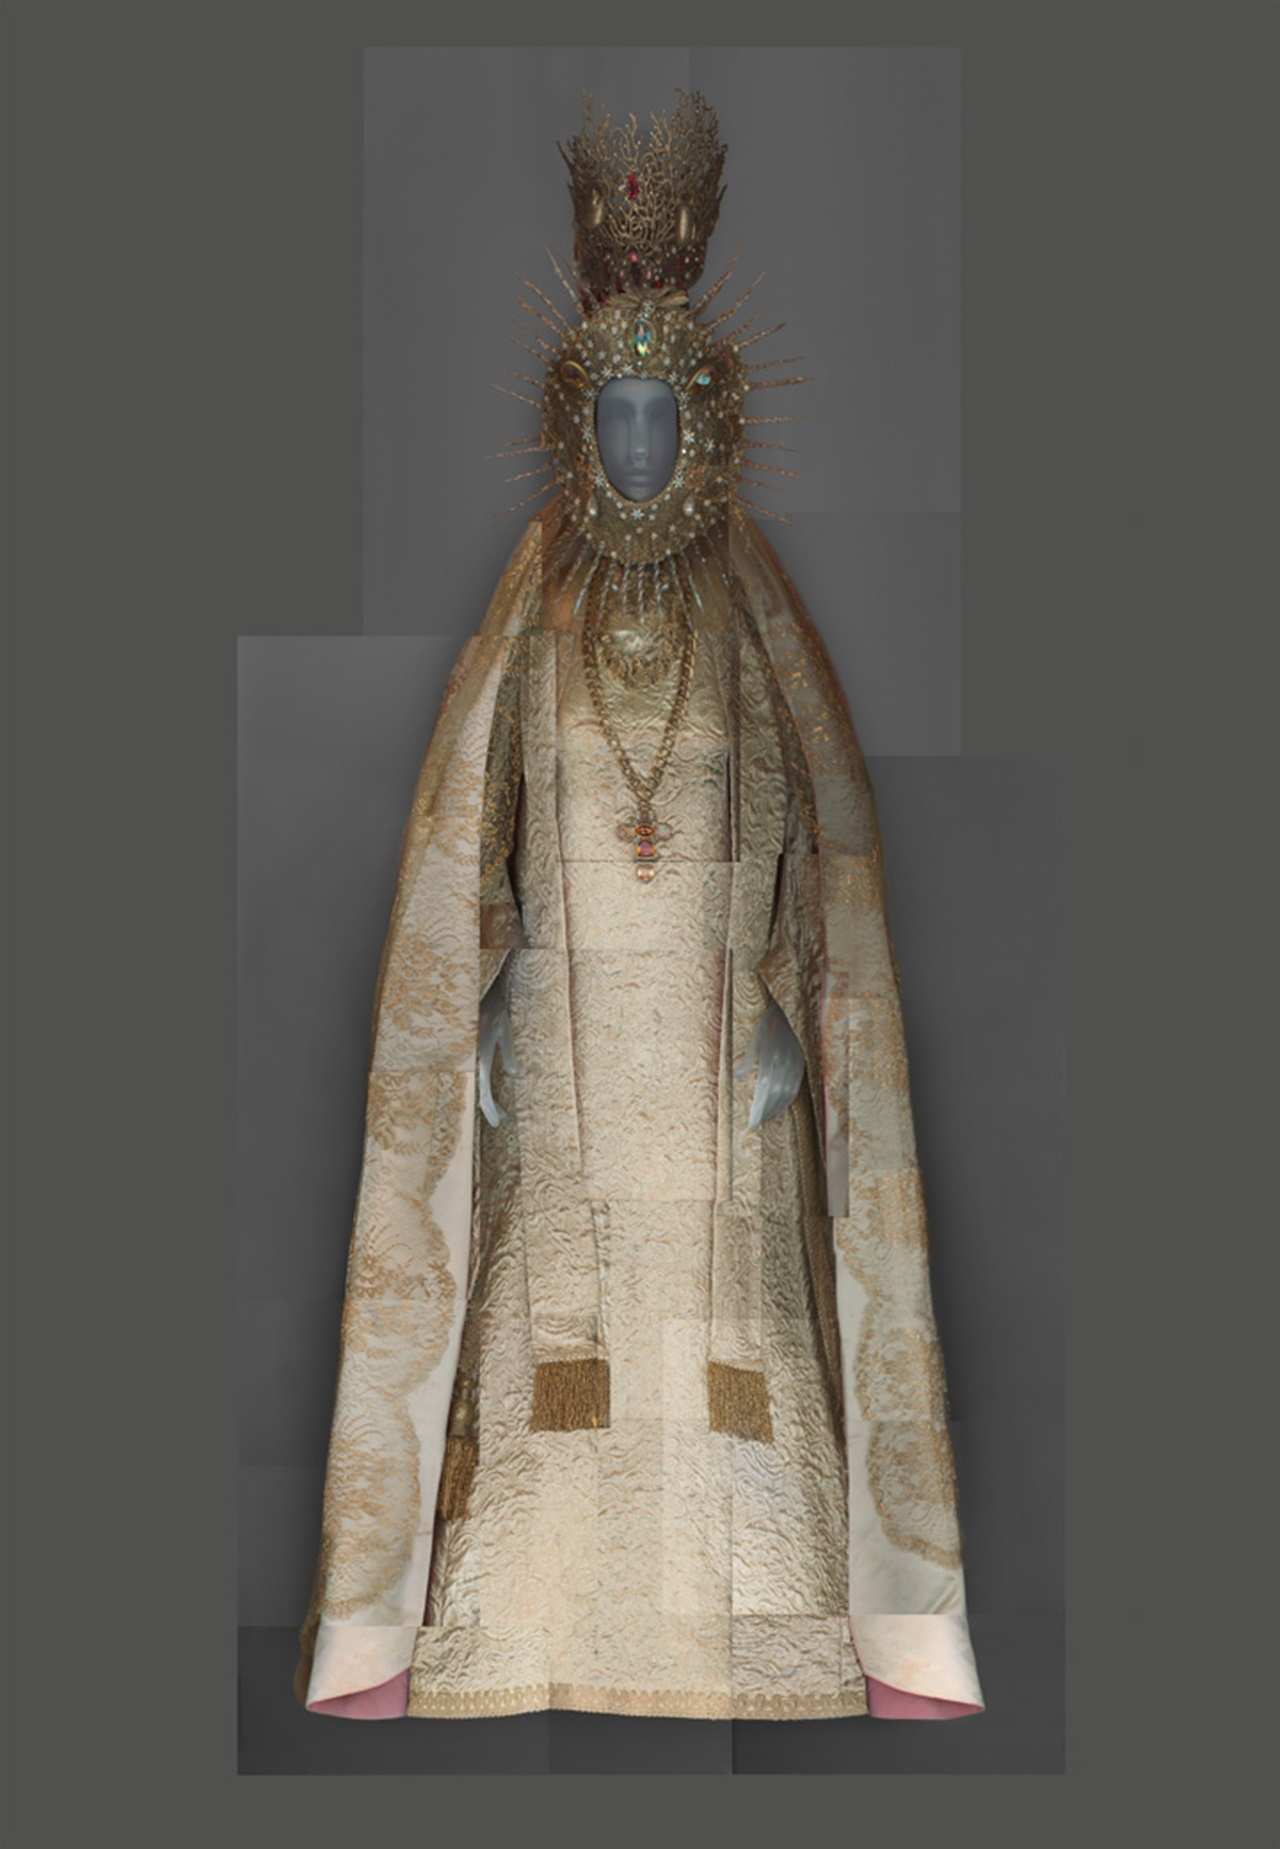 Yves Saint Laurent. Statuary vestment for the Virgin of El Rocío, ca. 1985. Courtesy of Chapelle Notre-Dame de Compassion, Paris. Digital composite scan by Katerina Jebb